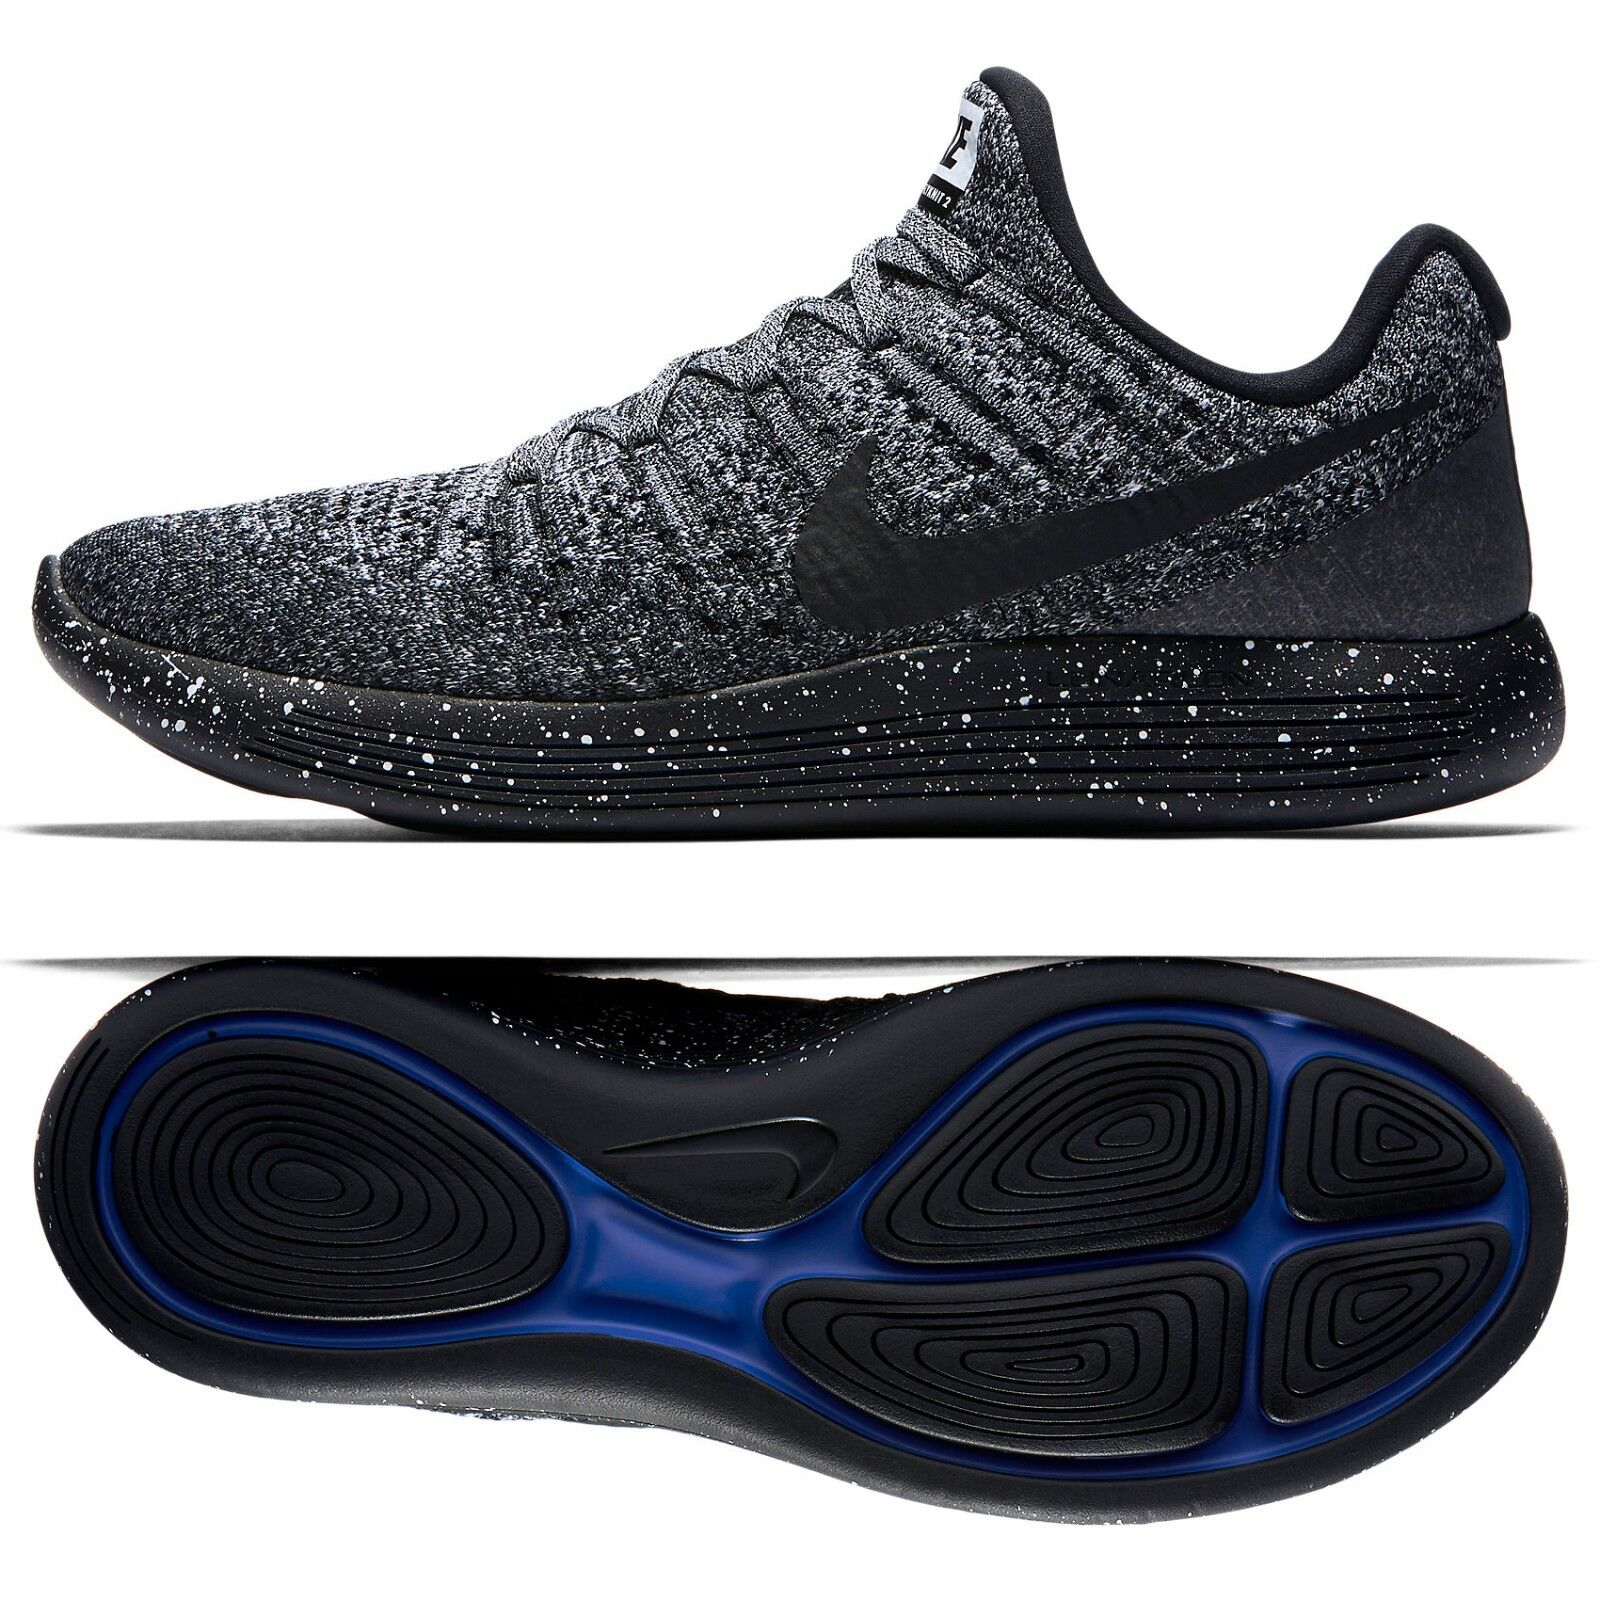 Nike LunarEpic Low Flyknit 2 863779-041 Black/White/Racer Blue Men Running Shoes New shoes for men and women, limited time discount